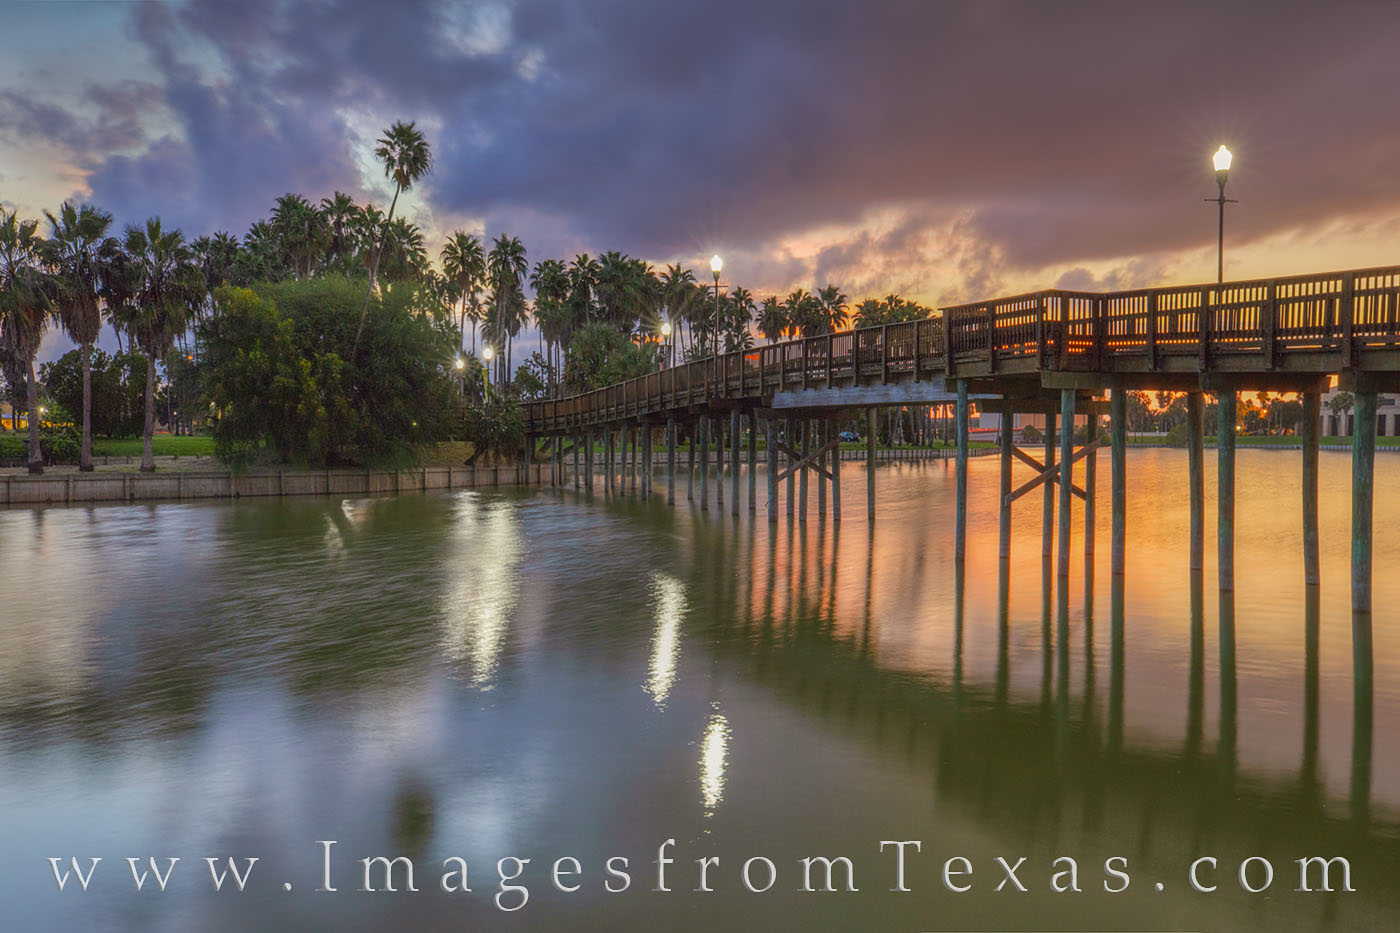 brownsville, south texas, border town, water, resaca, texas coast, gulf coast, bridge, photo